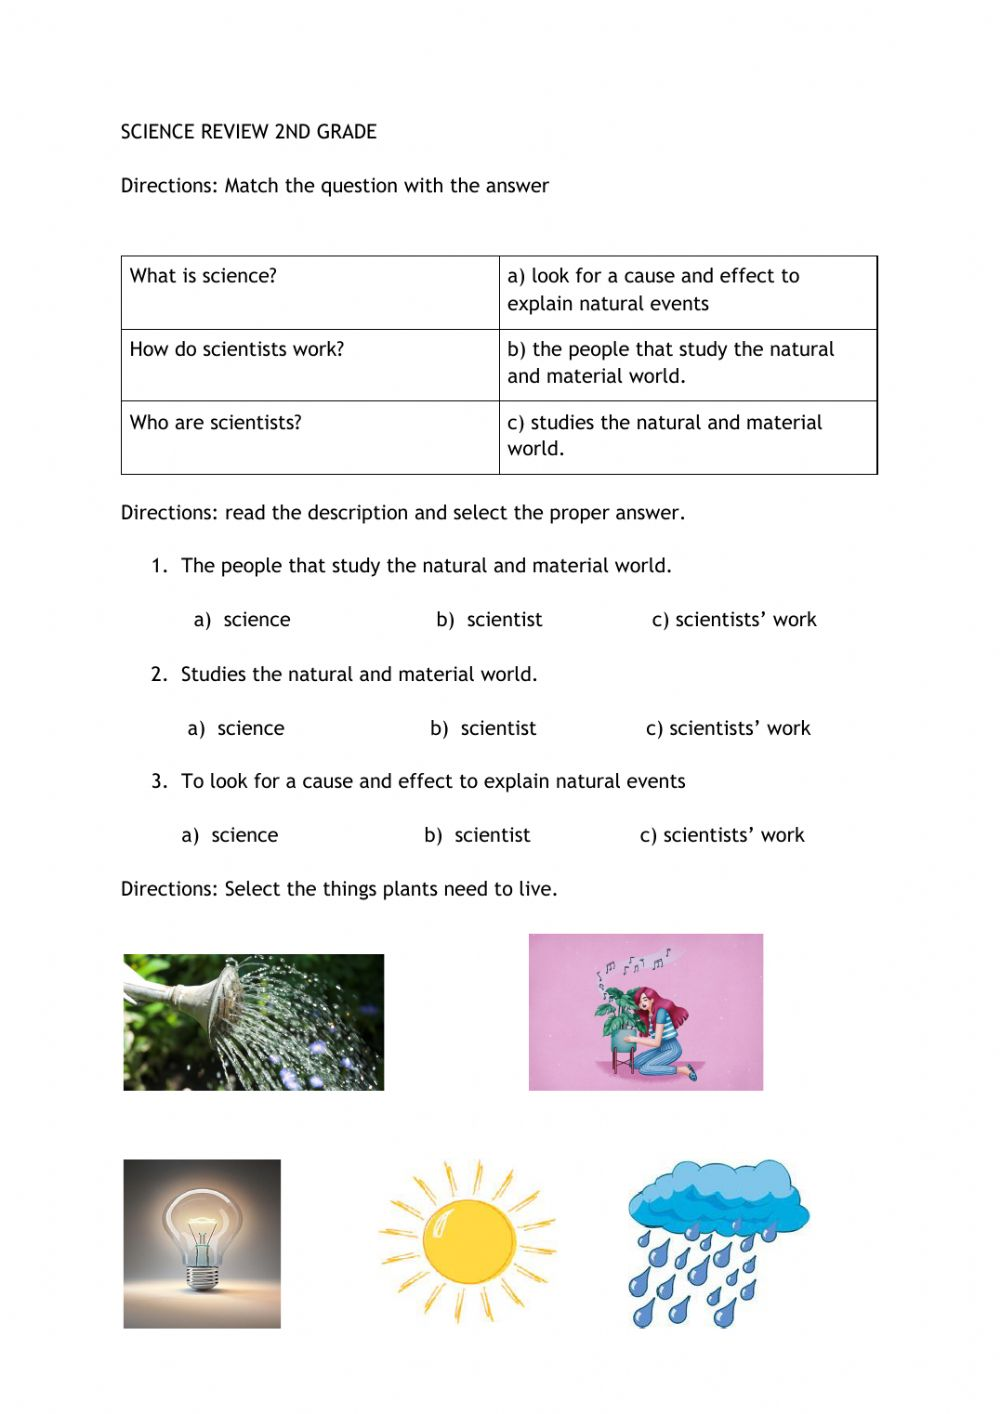 hight resolution of SCIENCE REVIEW 2nd grade interactive worksheet